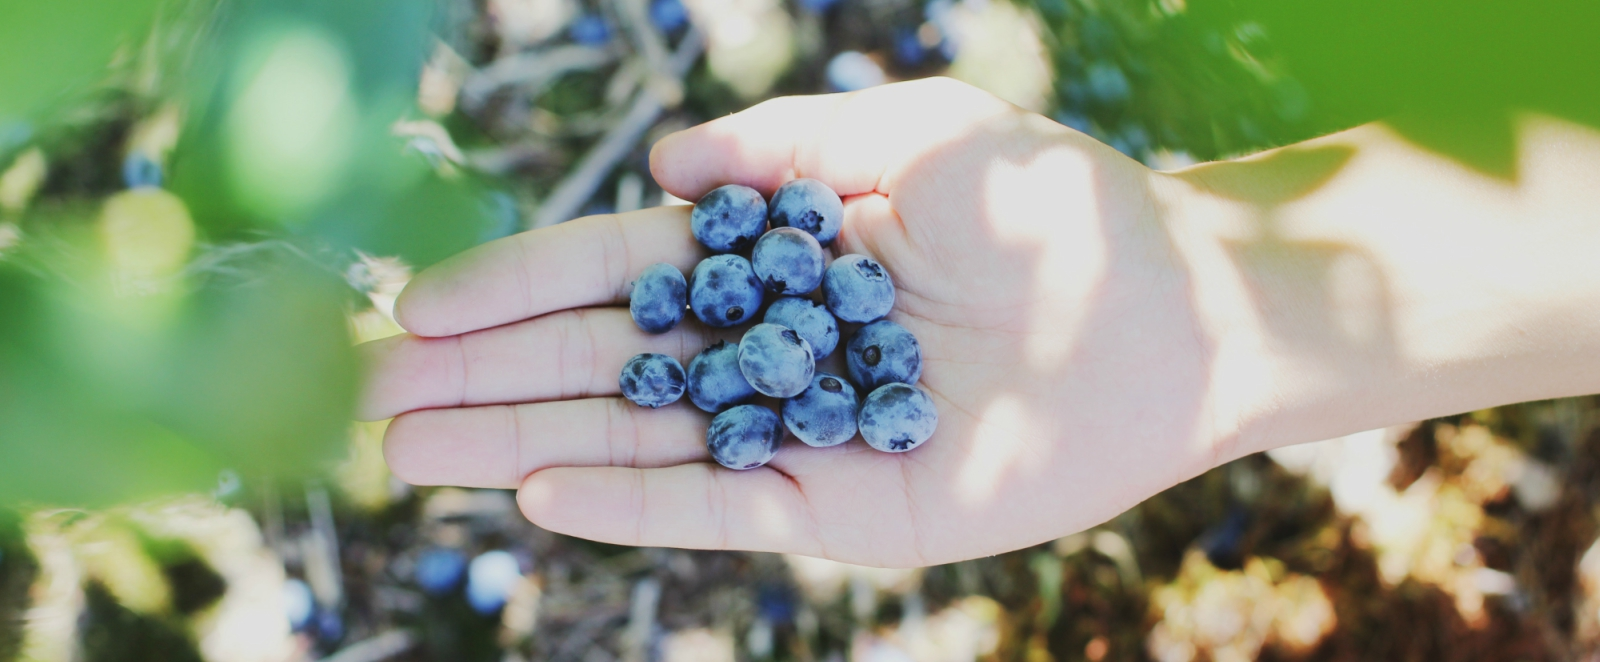 blueberry-blog.jpg